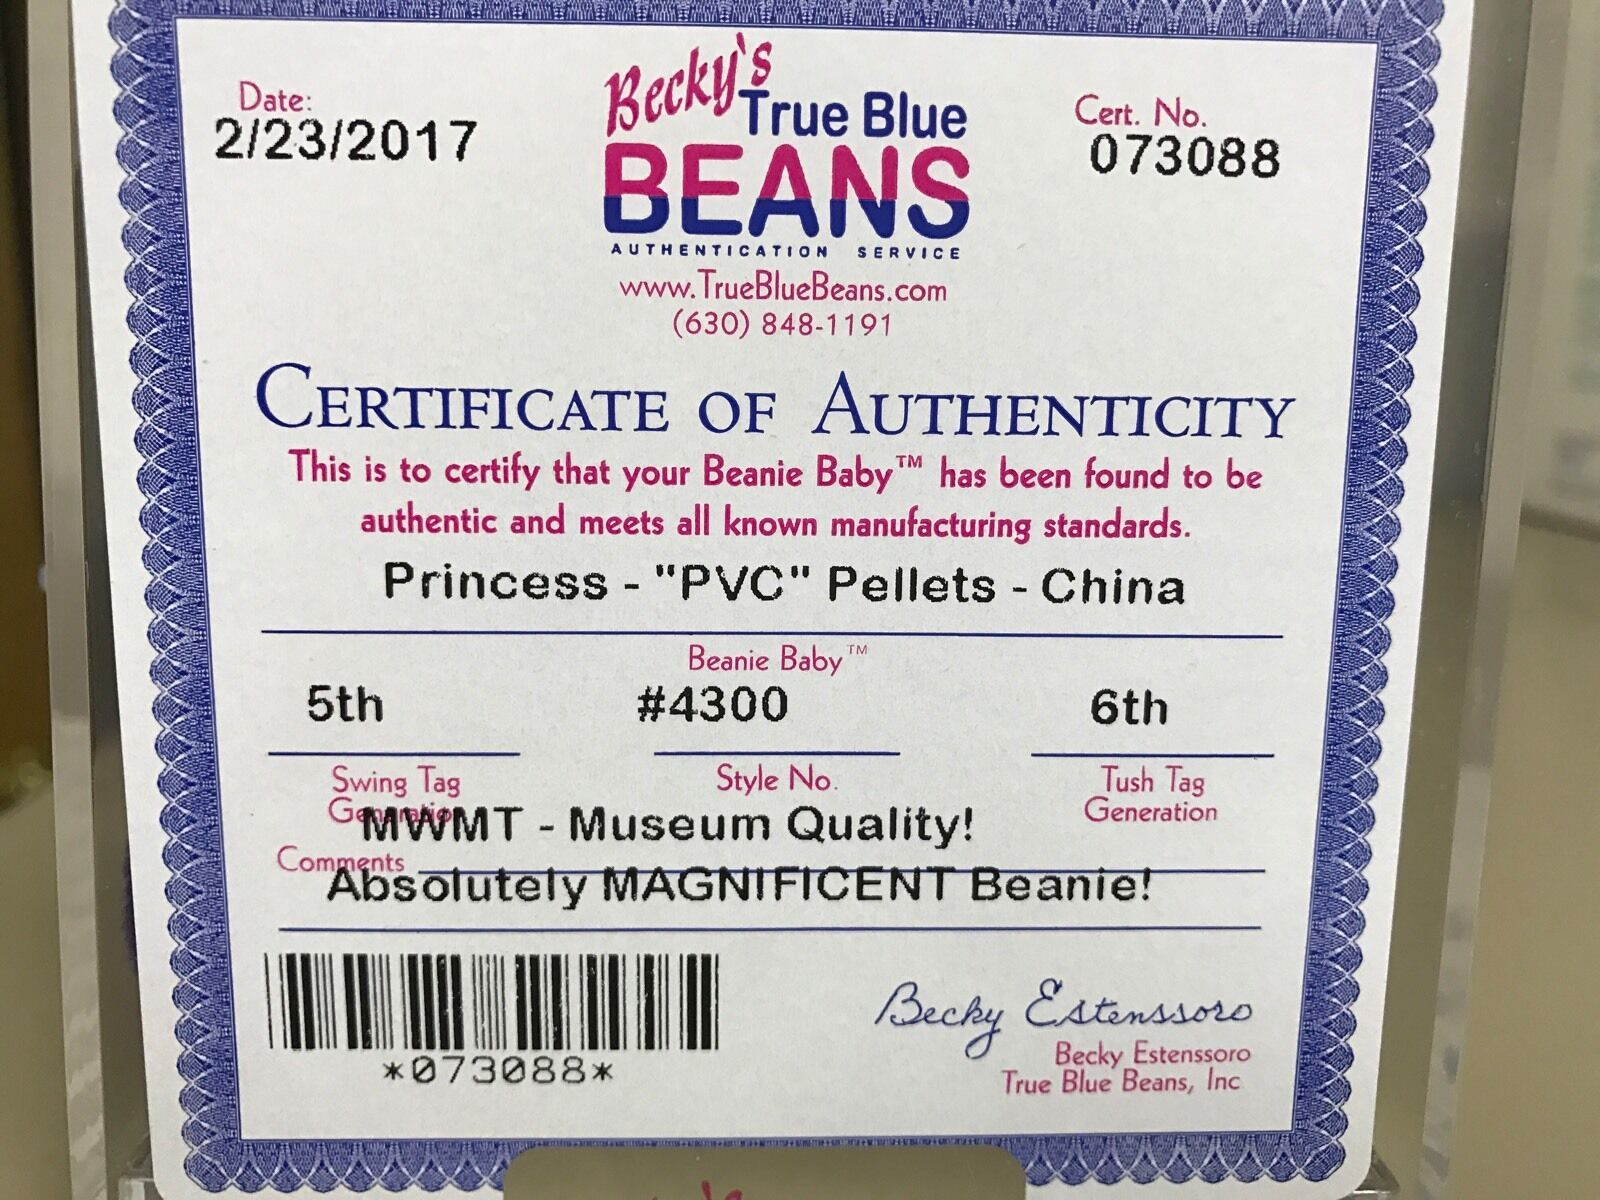 RARE Authenticated,Princess Authenticated,Princess Authenticated,Princess Diana Beanie Baby PVC Pellets,Museum Quality d393fc